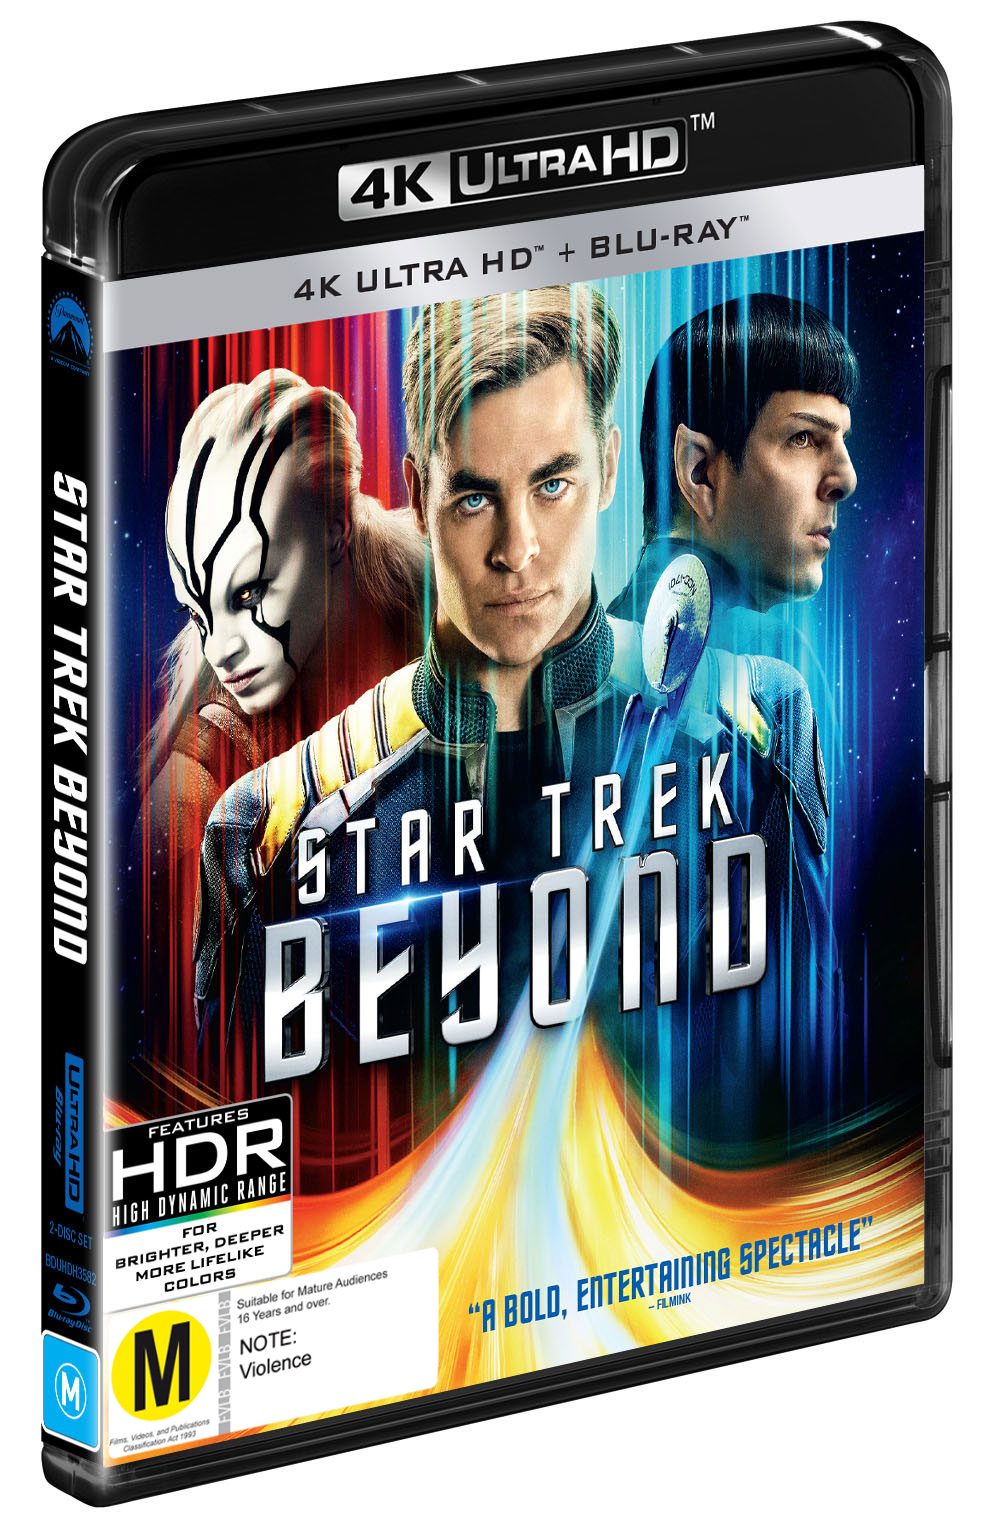 Star Trek Beyond on Blu-ray, UHD Blu-ray image